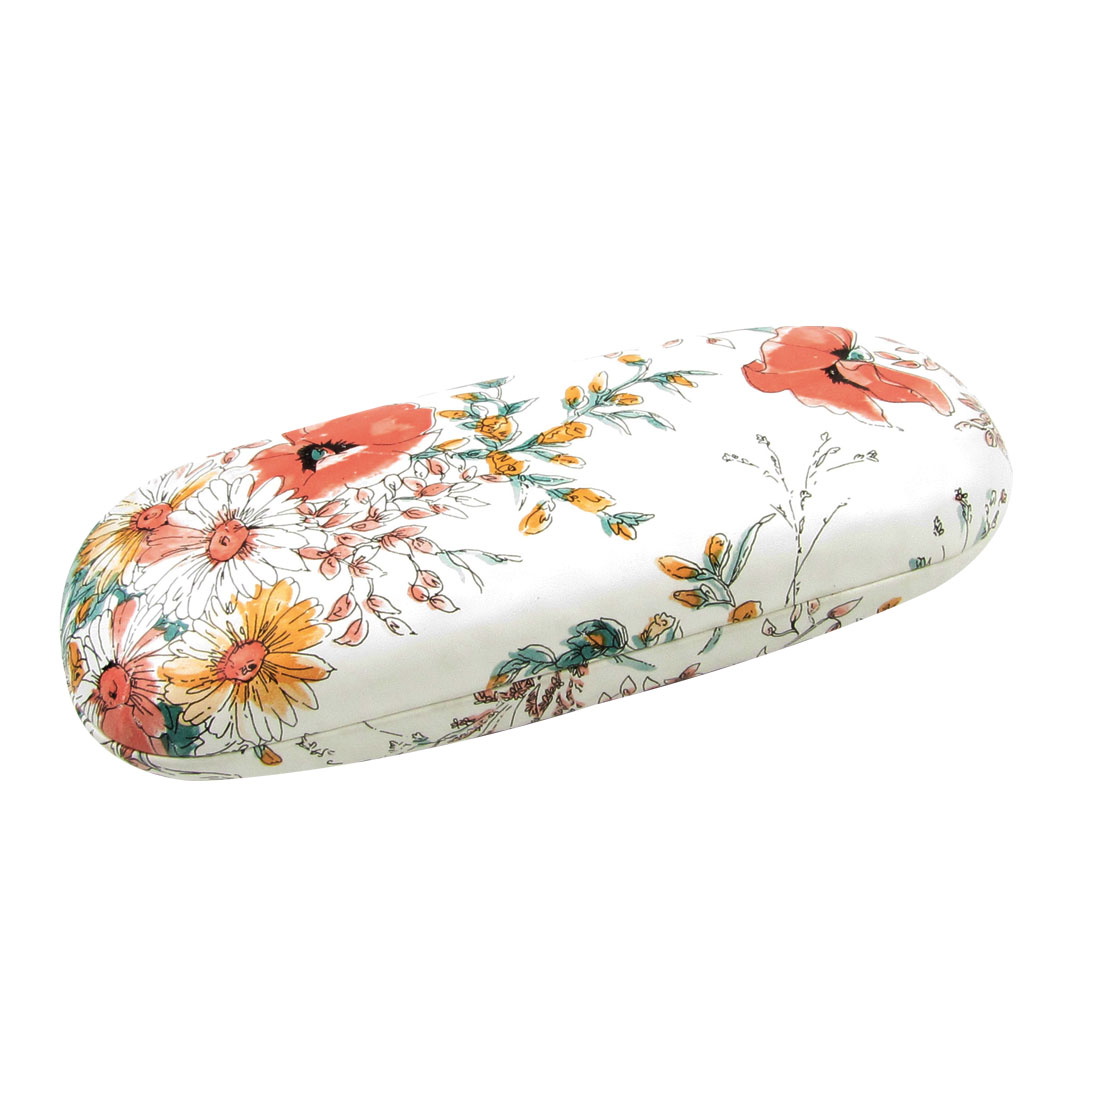 "6.3"" Length Orange Flowers Print White Faux Leather Eyeglasses Case Holder"